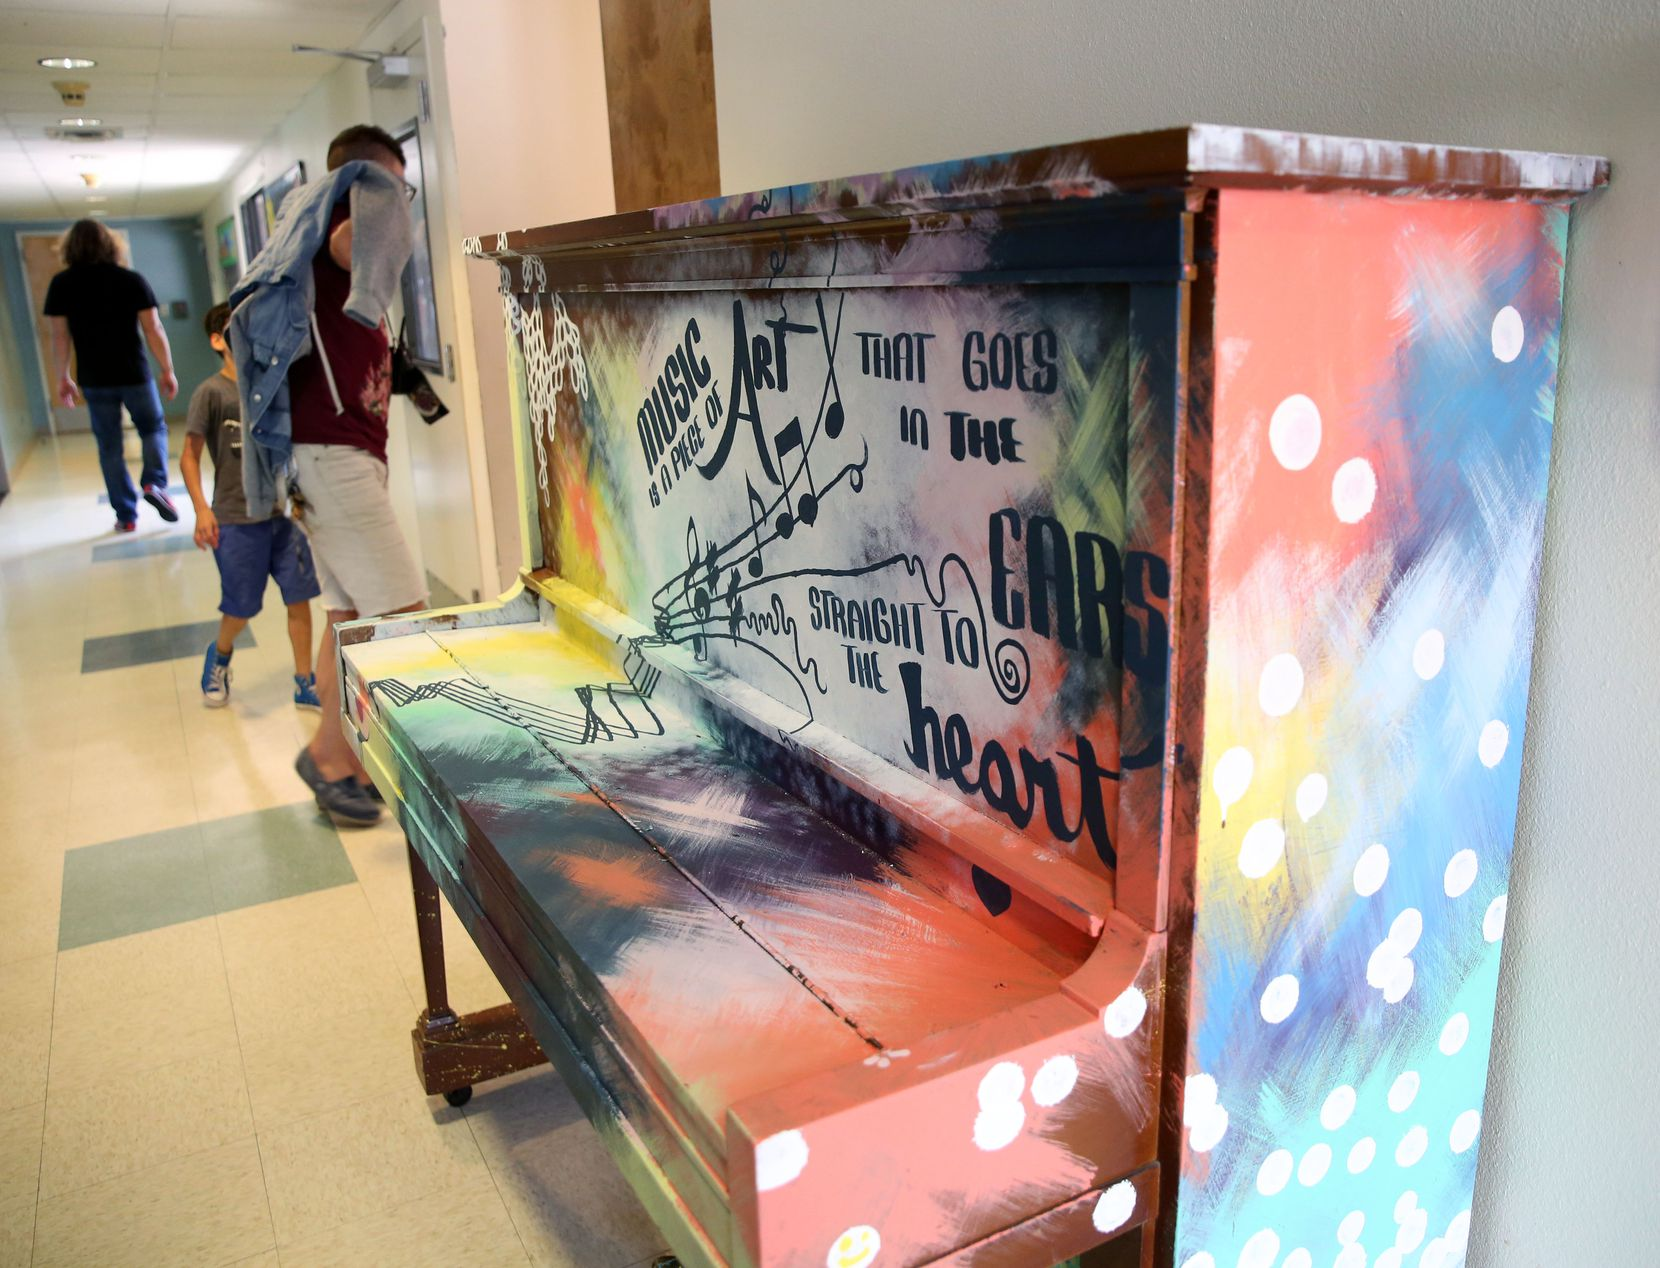 The hallway at Helping Hand Home, a residential foster care facility for children, in Austin, Texas on Tuesday, June 28, 2017. (Rose Baca/The Dallas Morning News)